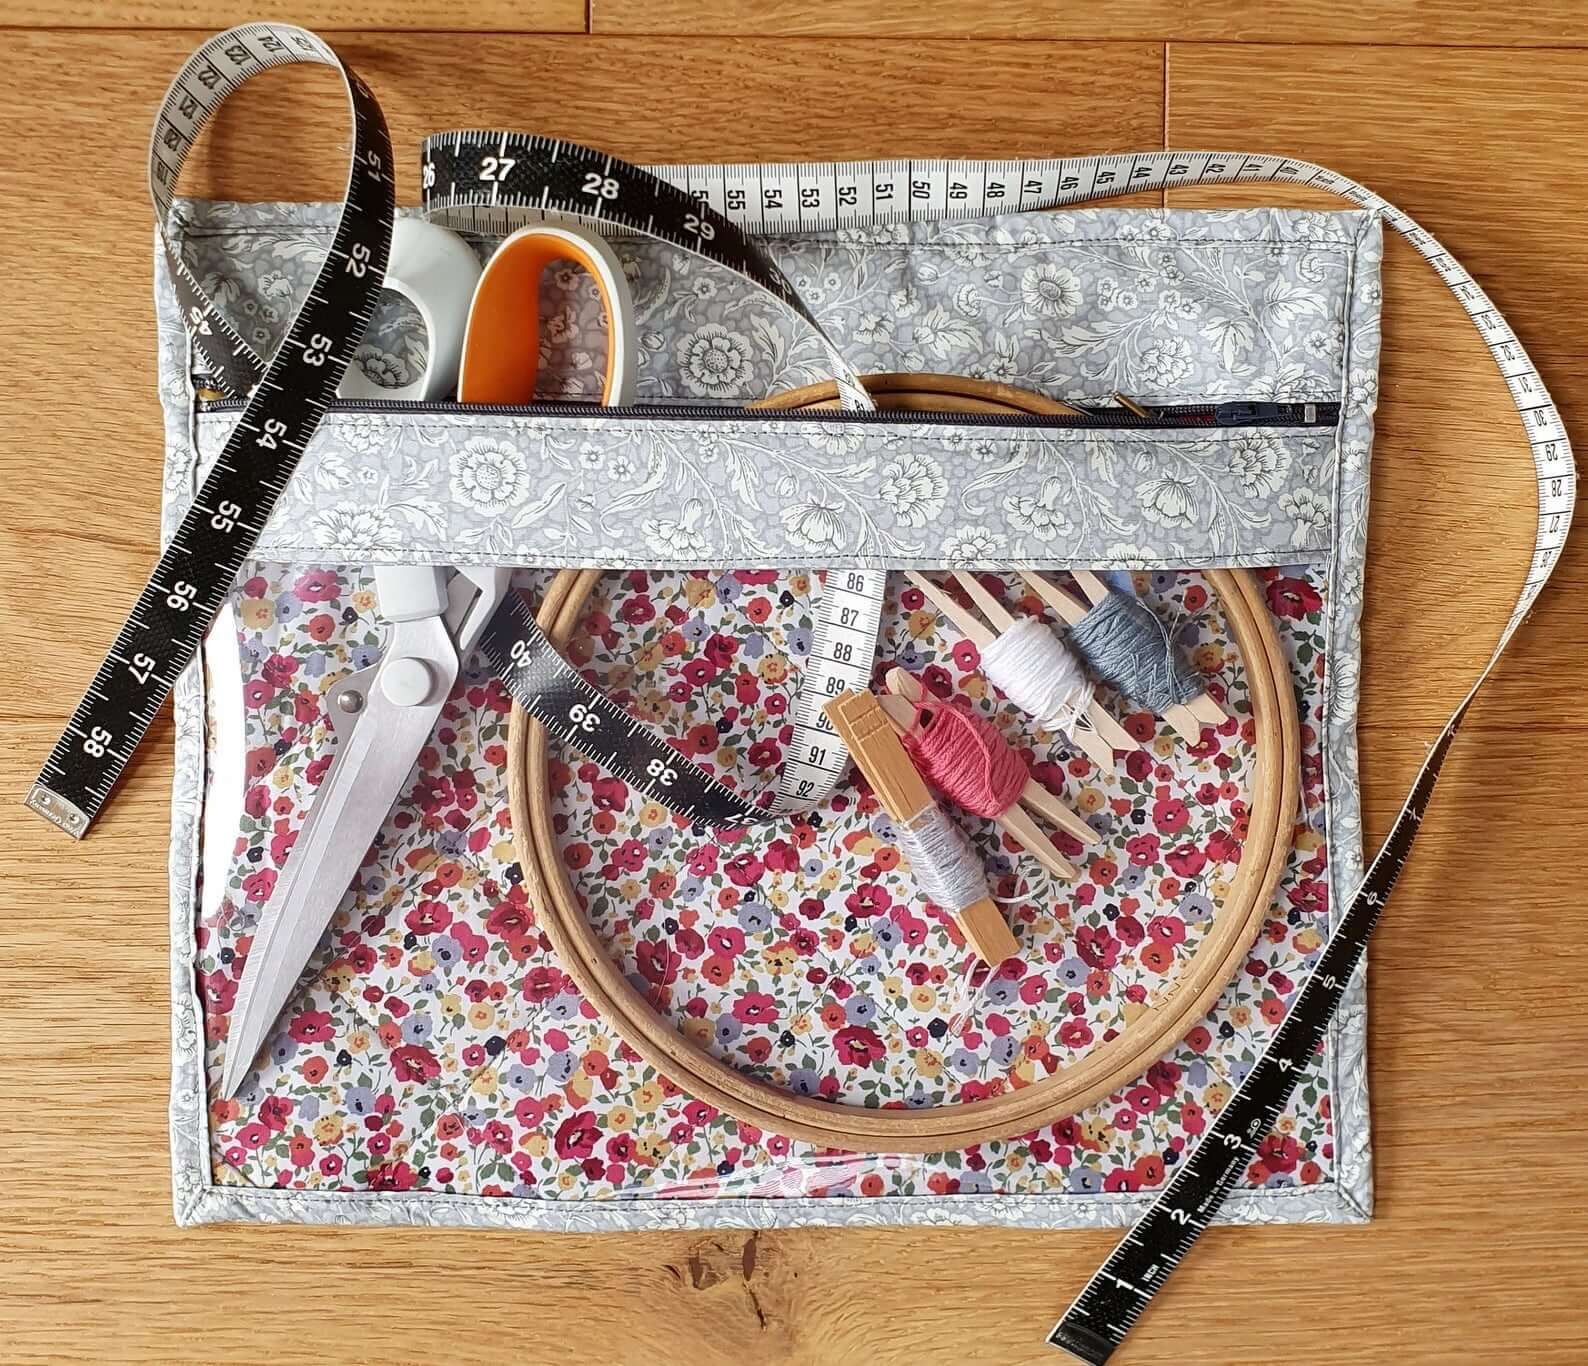 Sewing Project Bag by TheTinySewingCompany (Source: Etsy)